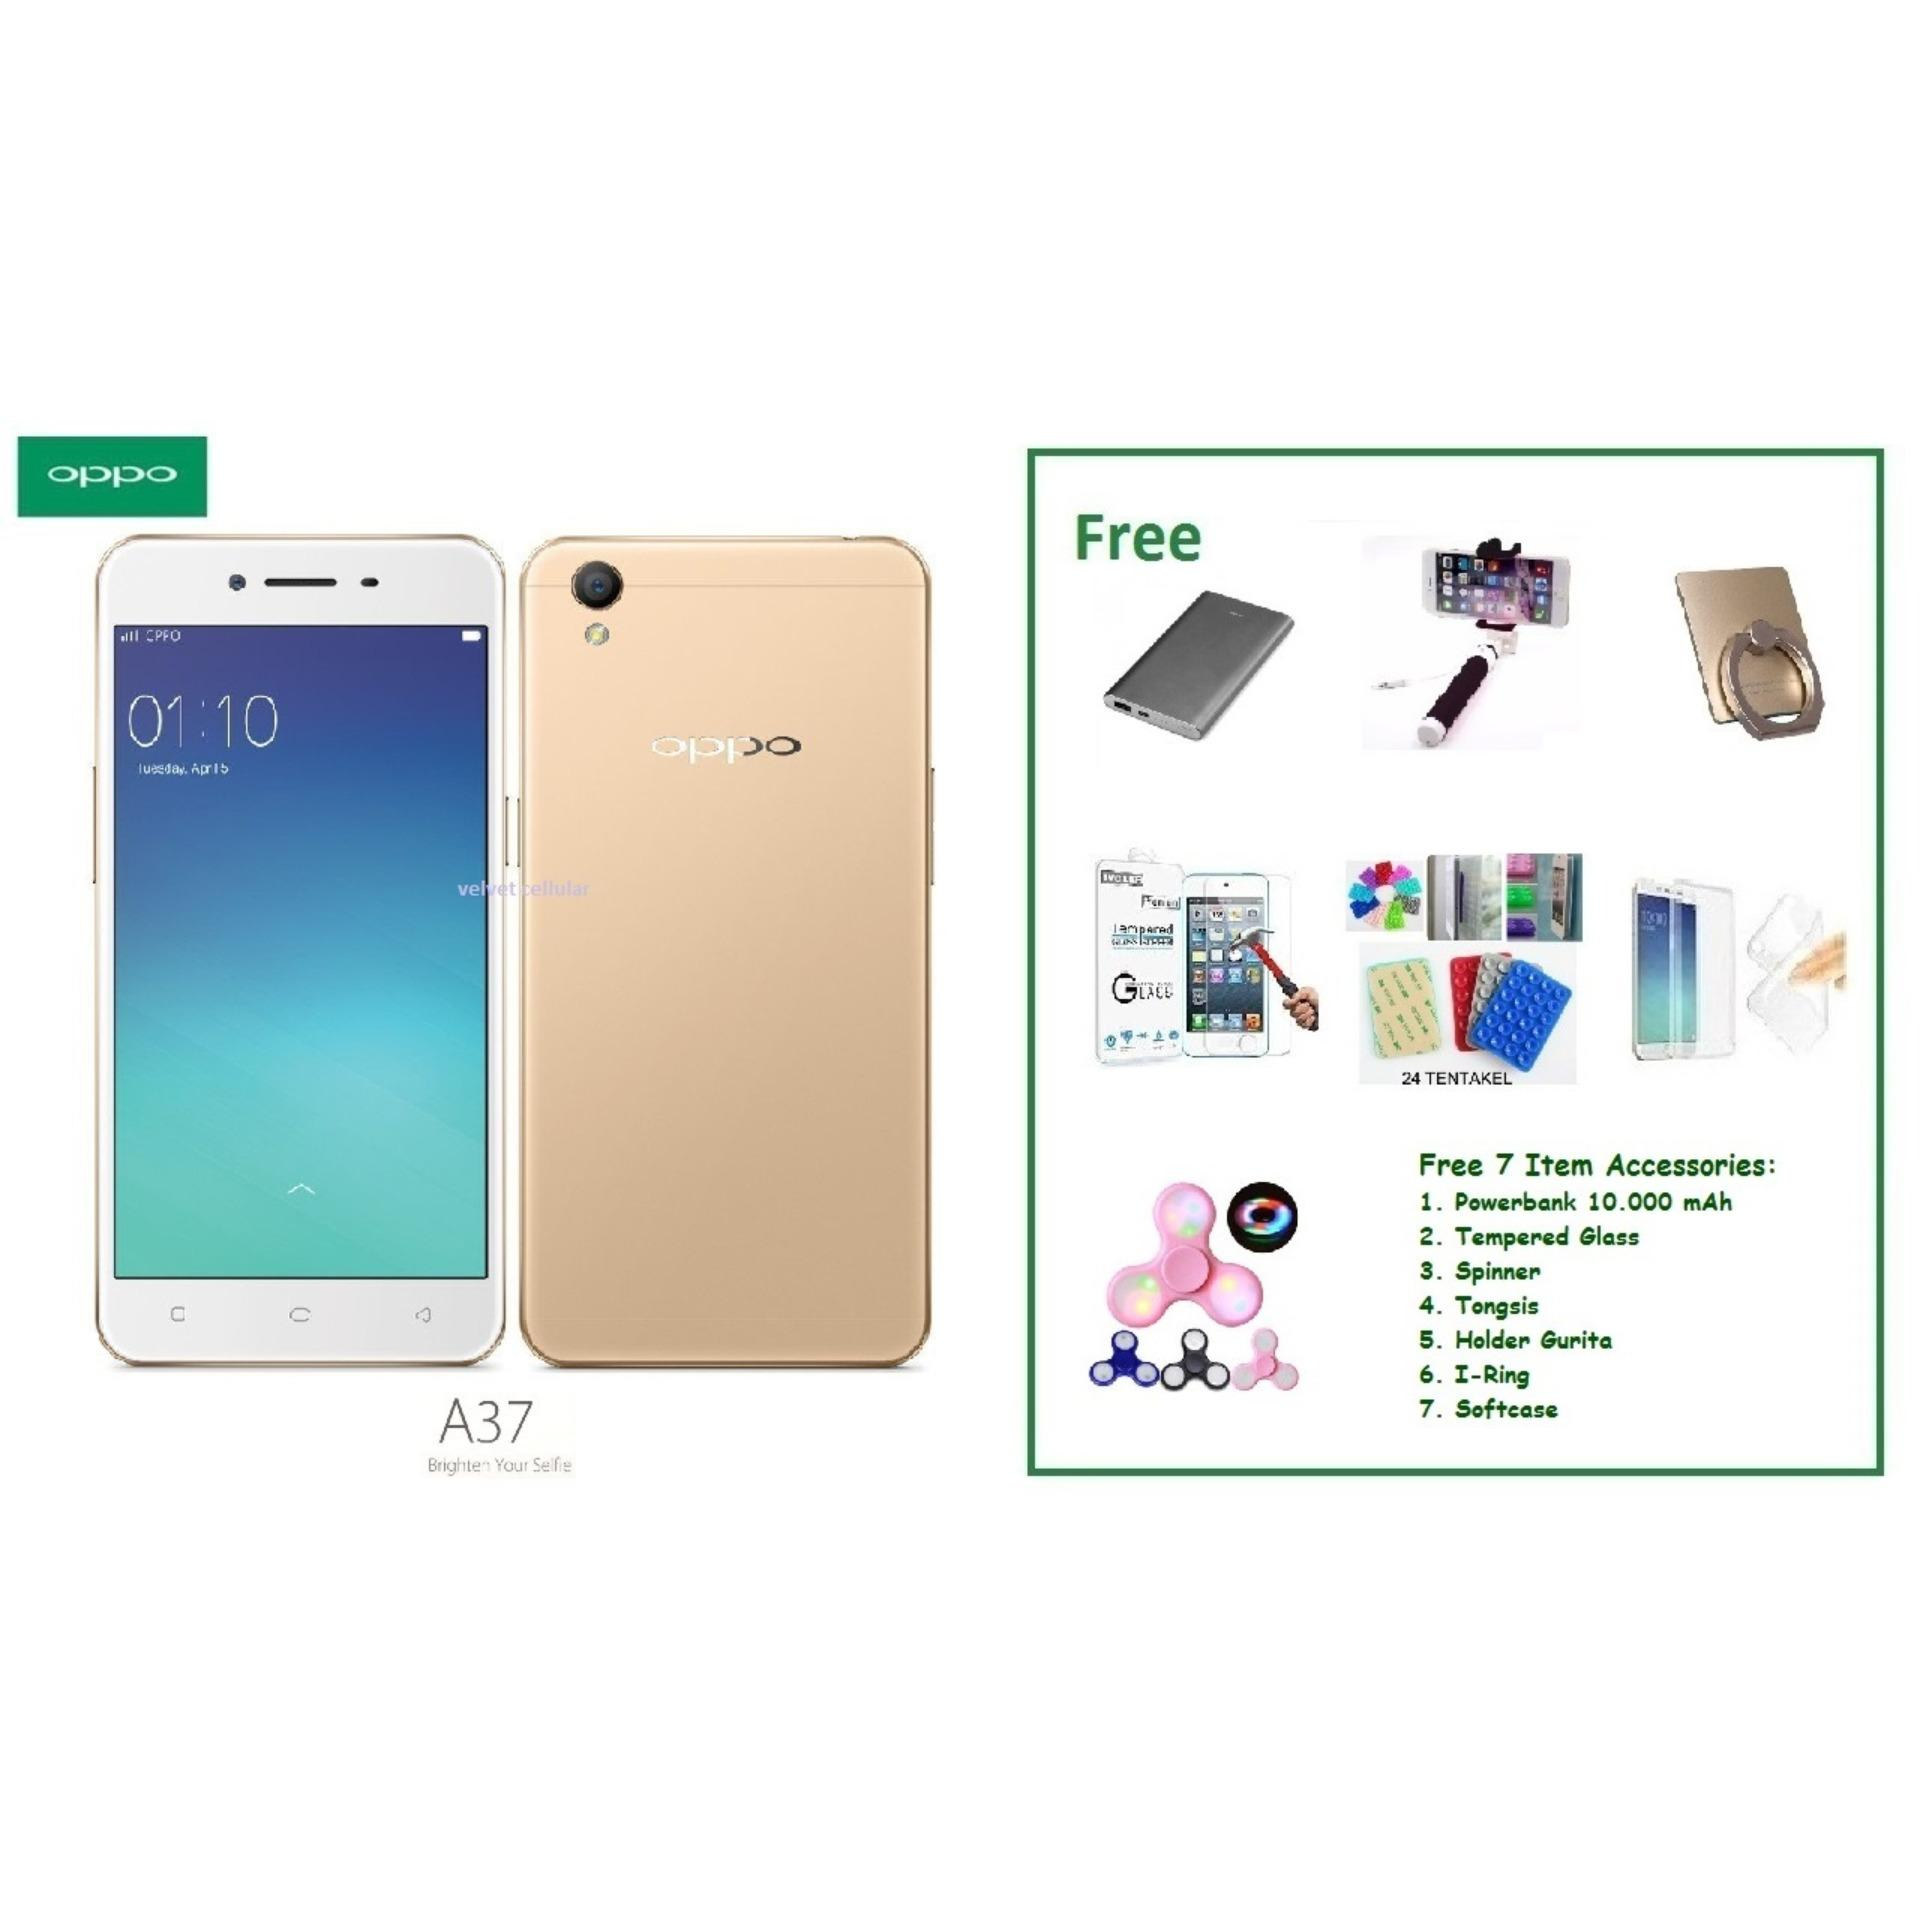 OPPO A37 [2/16GB] + Free 7 Item Accessories